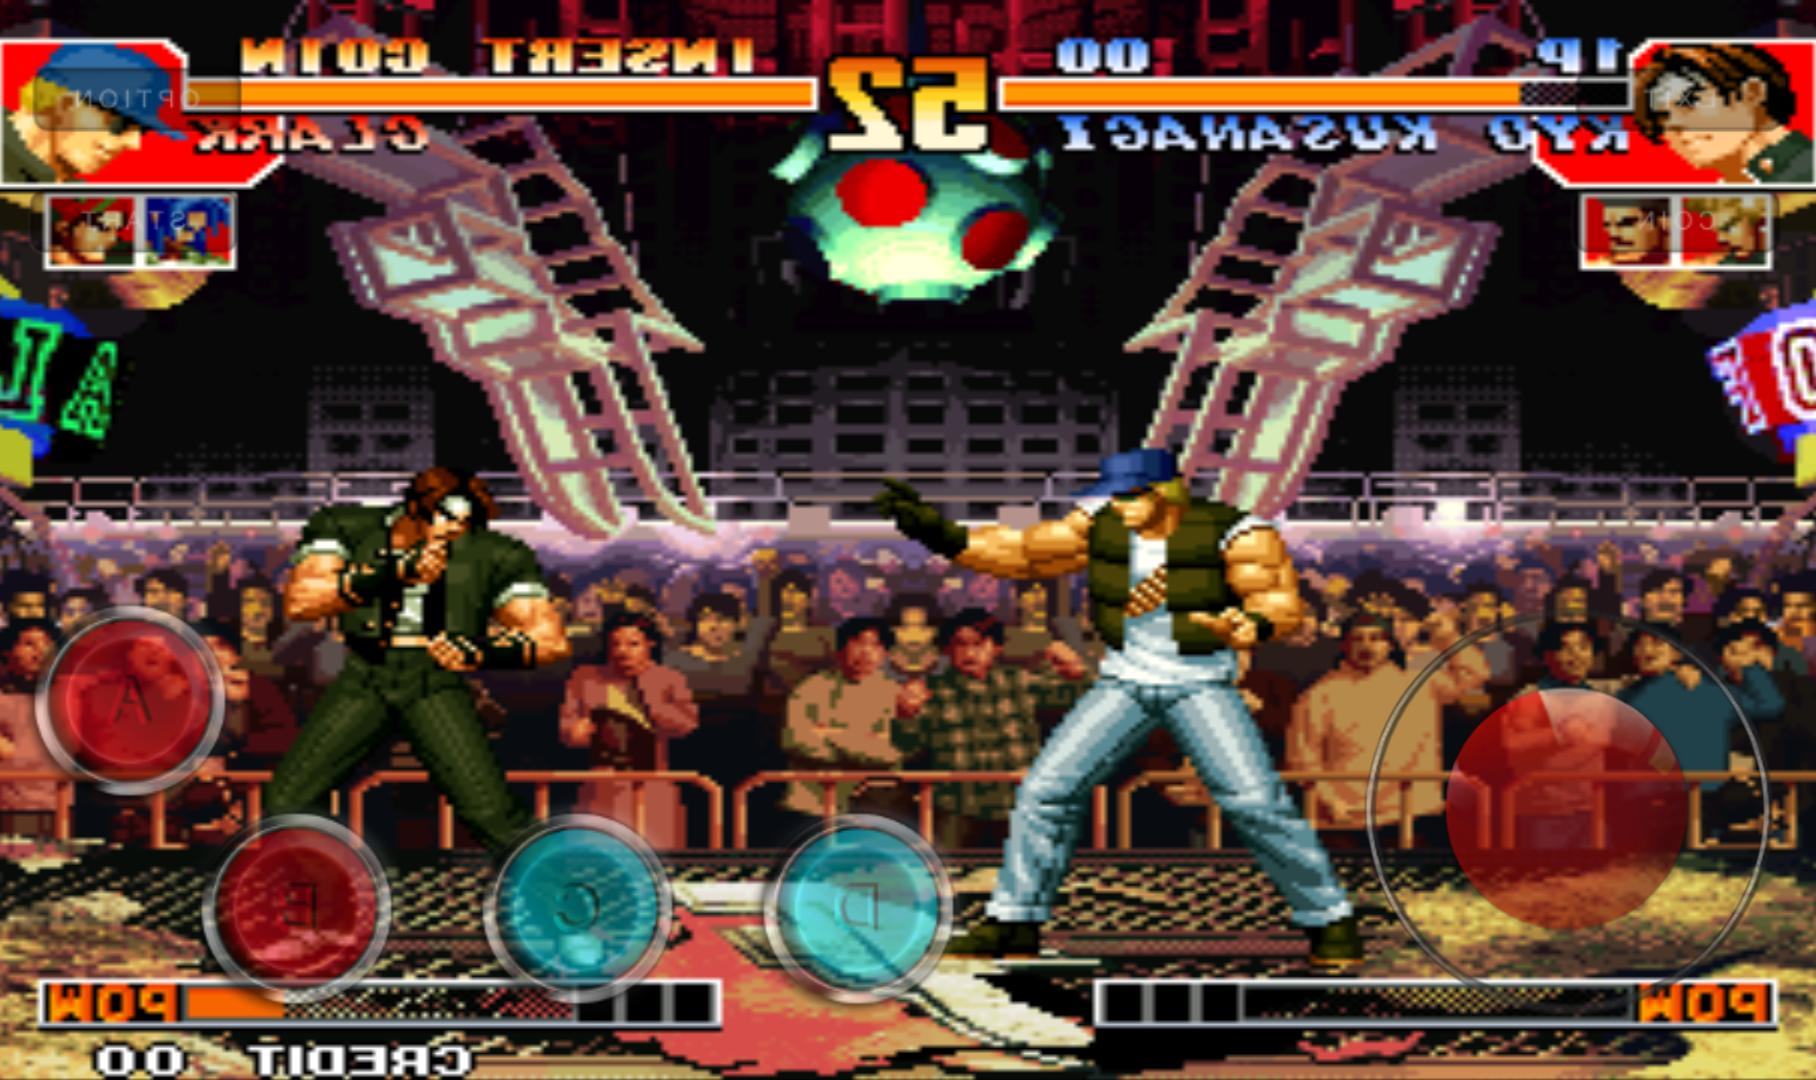 Mamedroid Kof 97 Fighter Arcade Plus For Android Apk Download